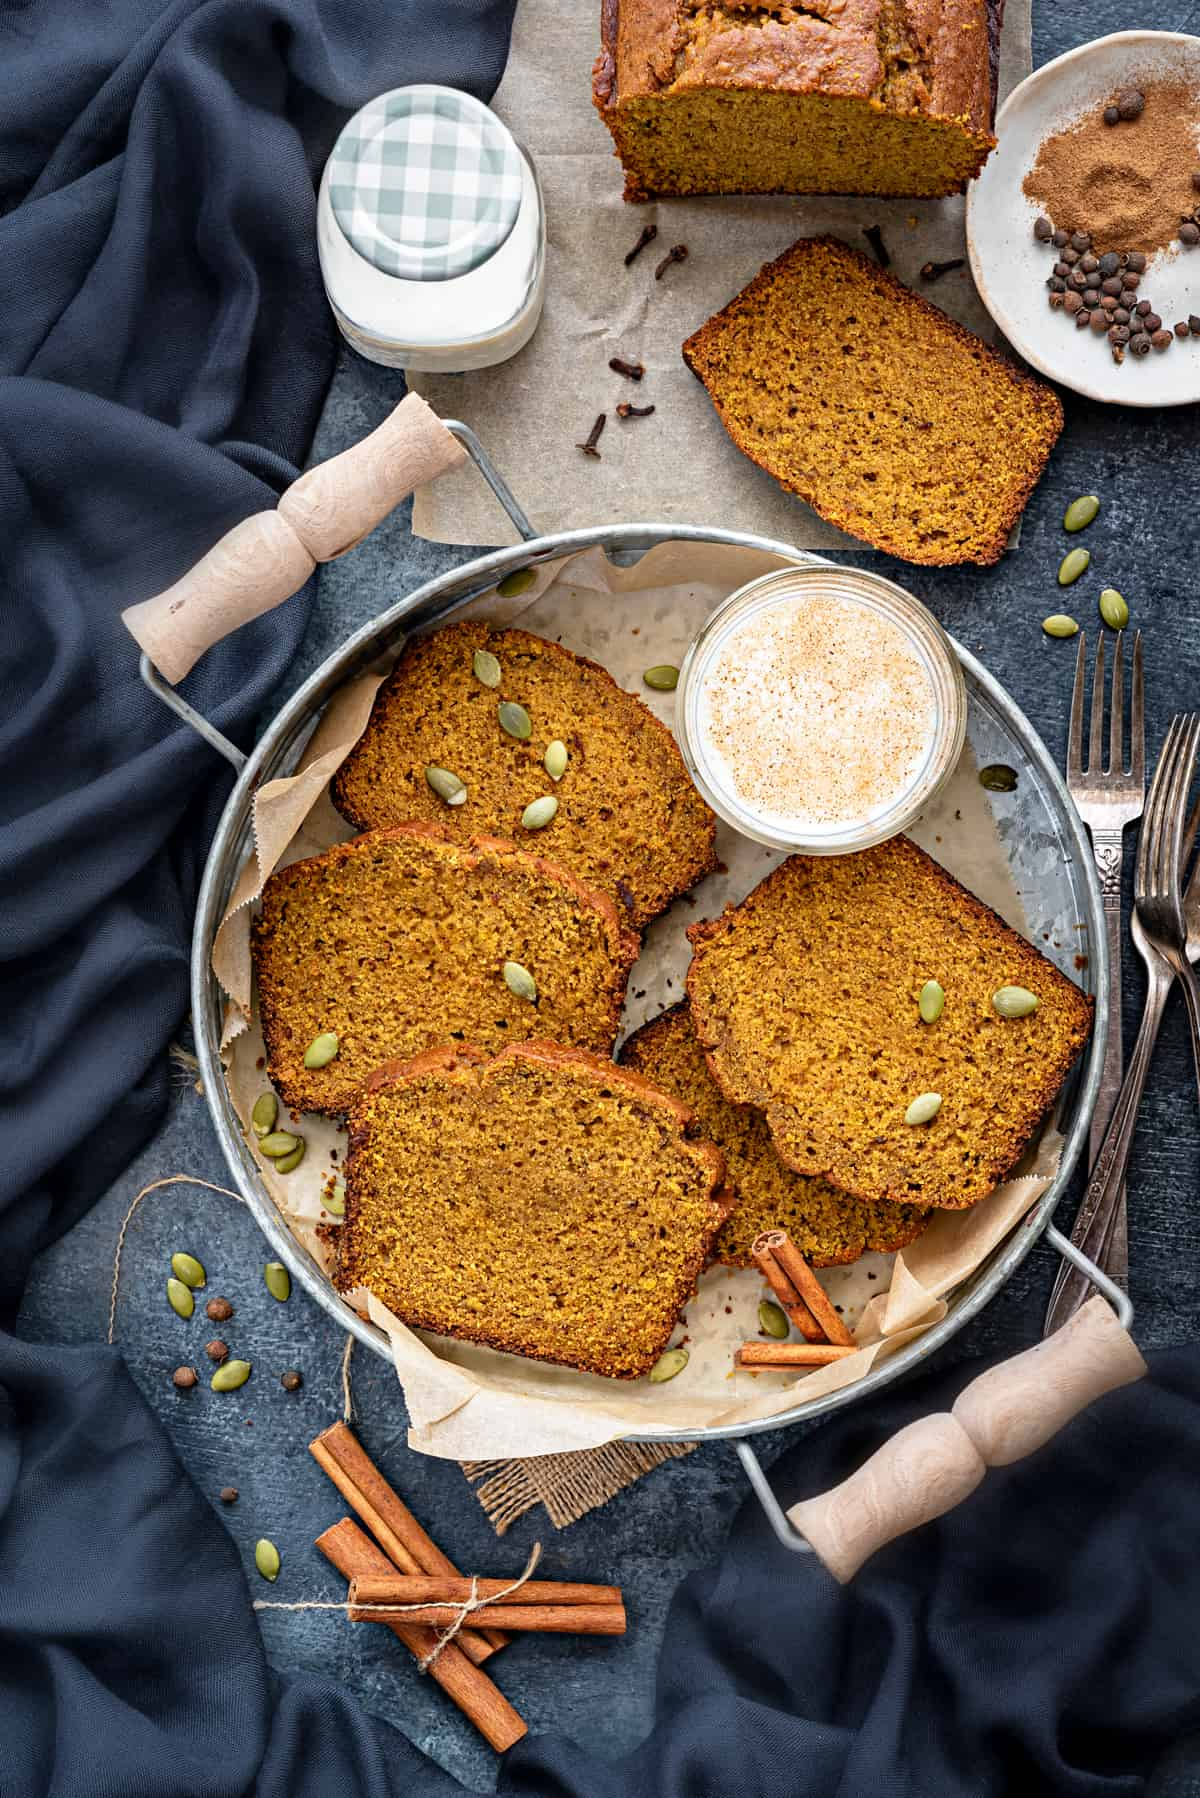 5 Pumpkin Bread slices on round tray with glass of milk and some spices spread around.